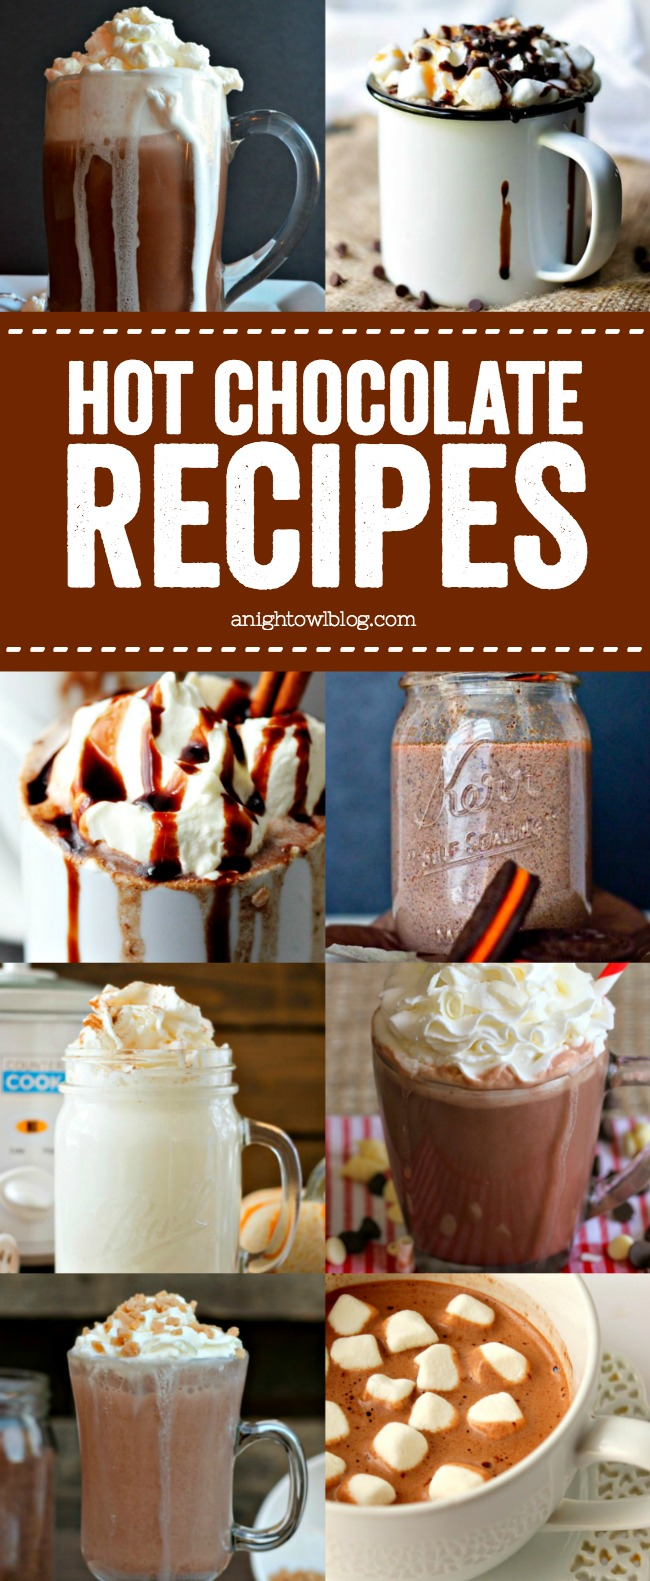 From Salted Caramel Frozen Hot Chocolate to a Spicy Hot Chocolate Mocha, discover over 25 Hot Chocolate Recipes to warm your chilly nights!